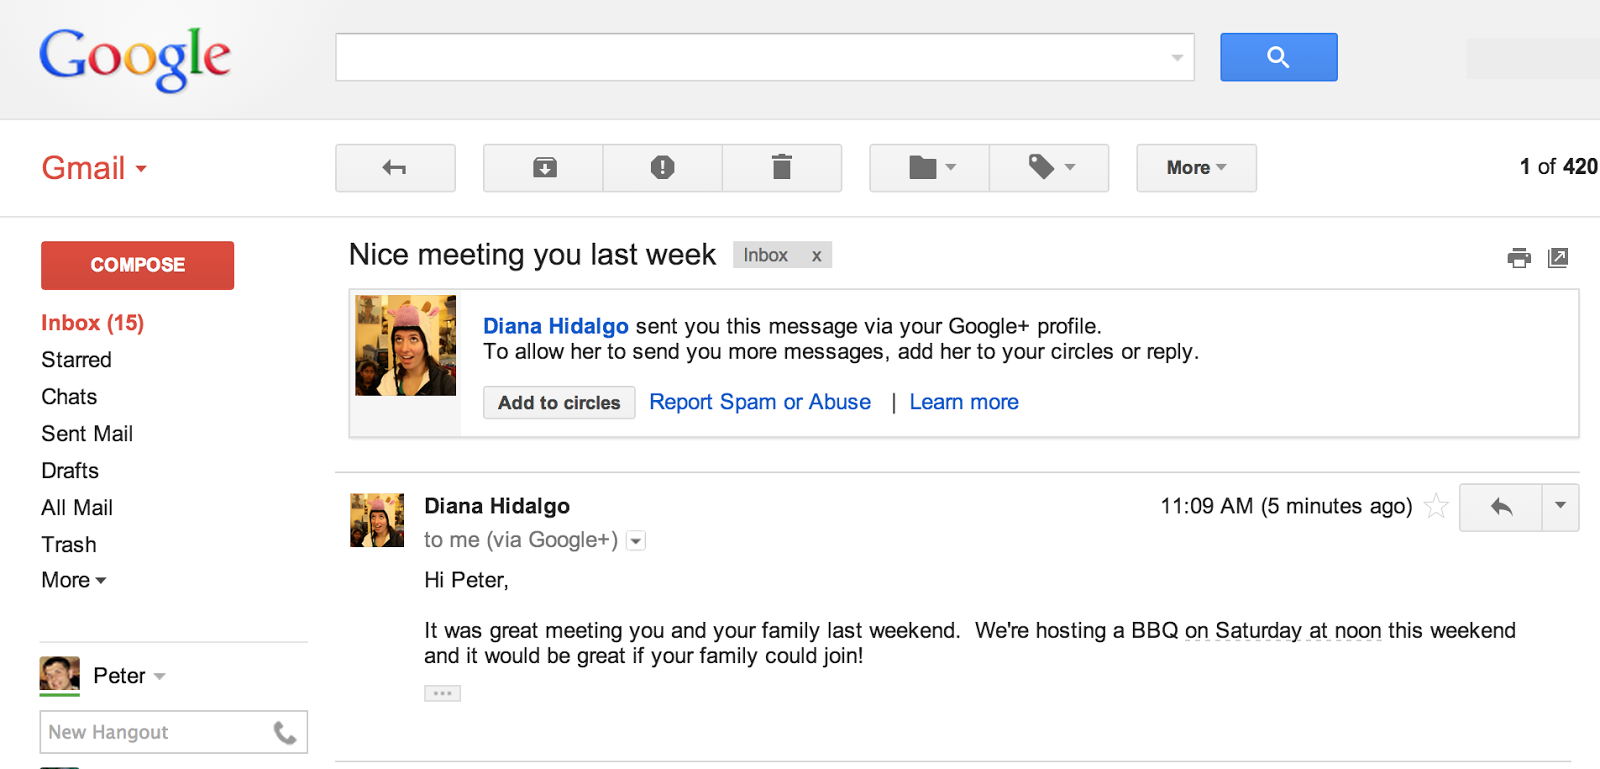 How the Google+ e-mails will appear in Gmail.